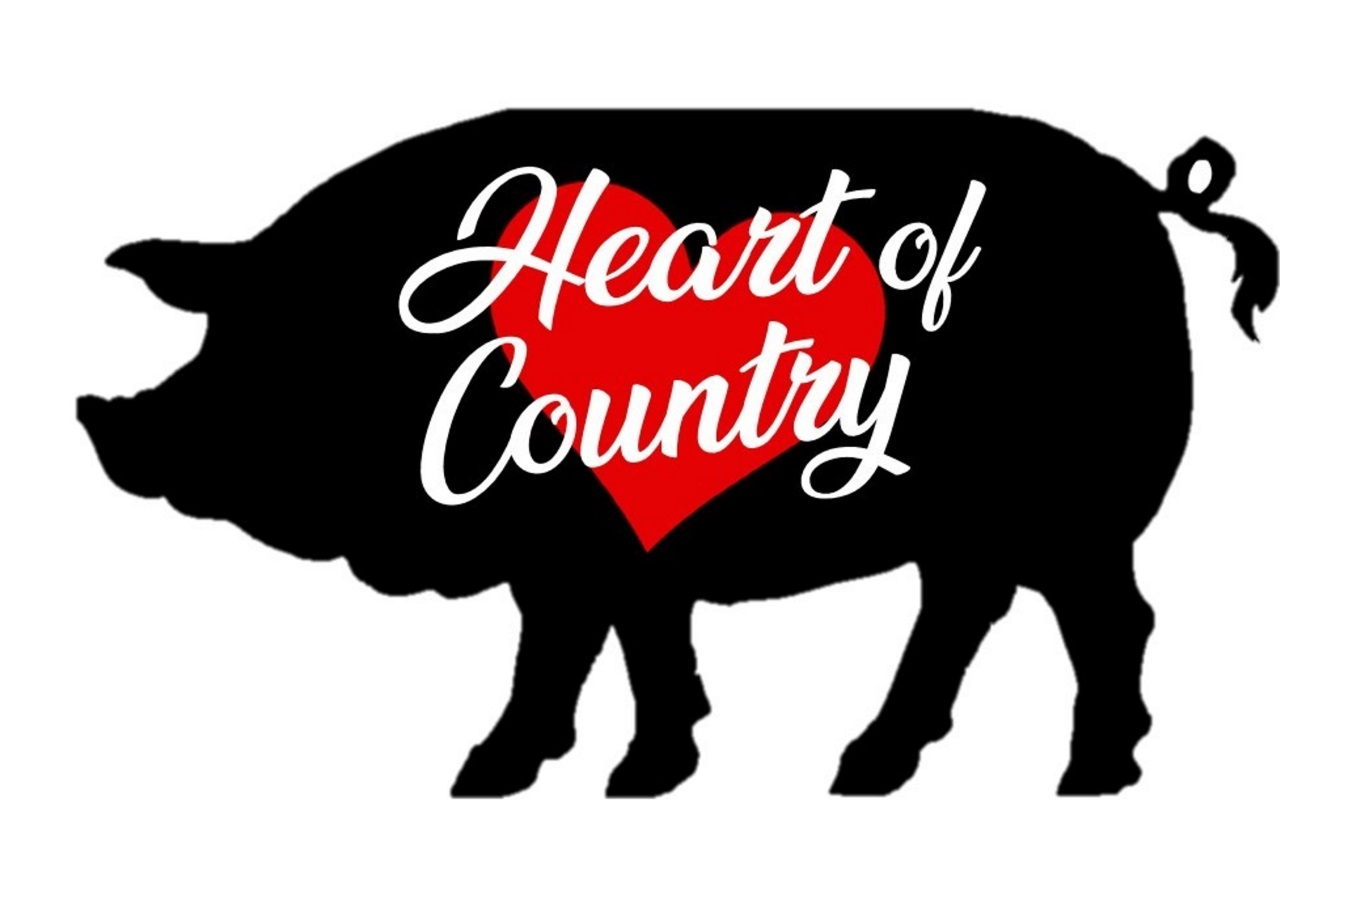 Heart of Country Festival